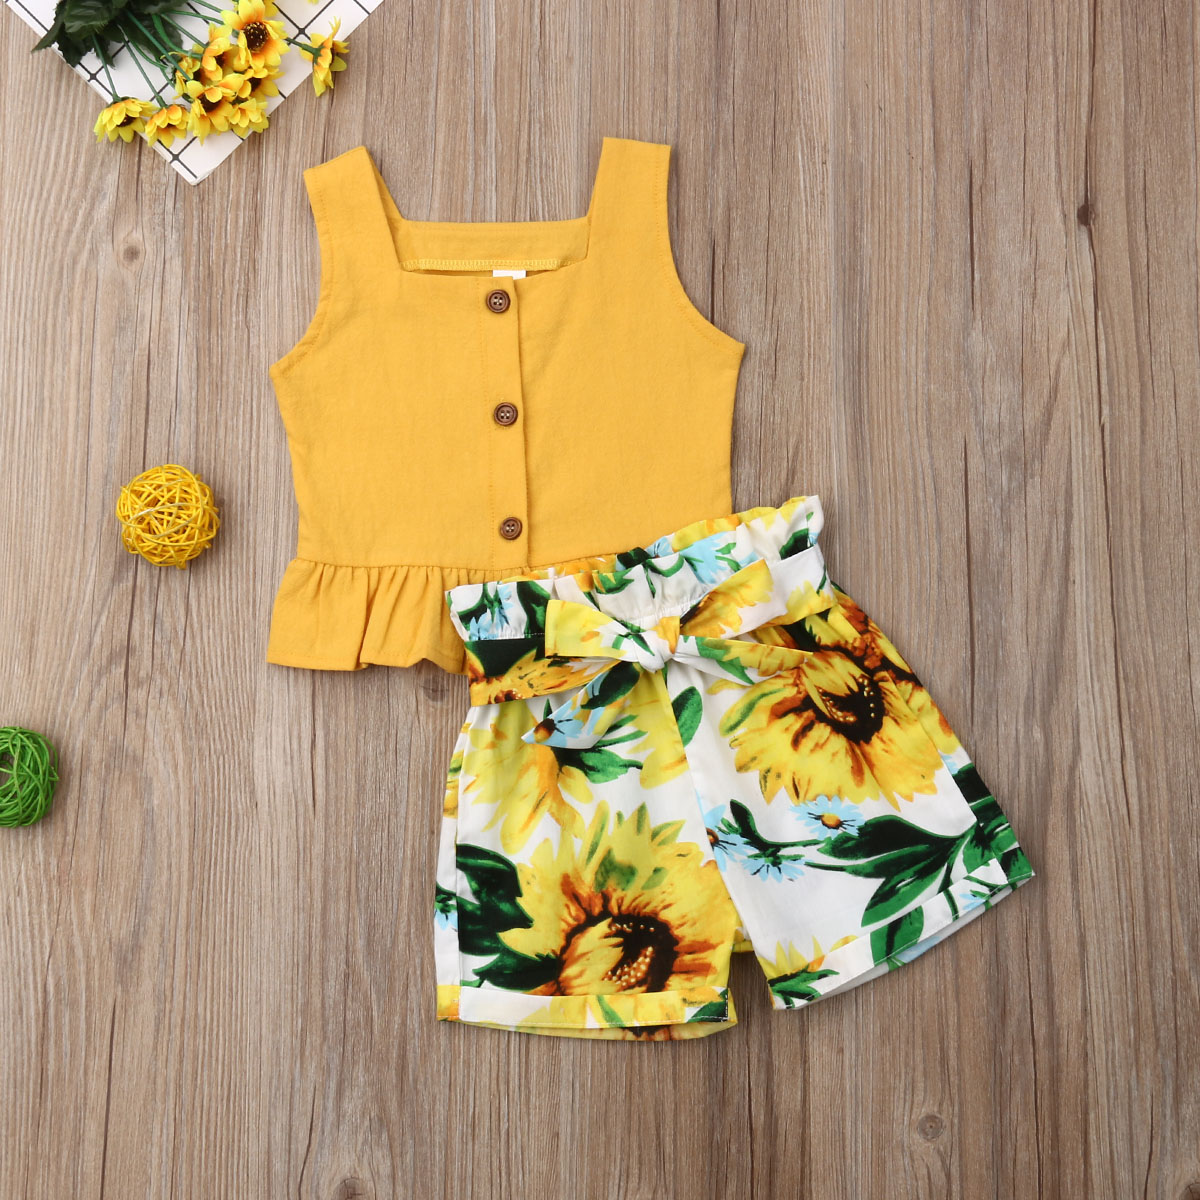 Toddler Kid Baby Girl Clothes Suit Solid Sleeveless Tops T-shirt+Shorts Pants 2pcs Outfit Set Summer 0-5T